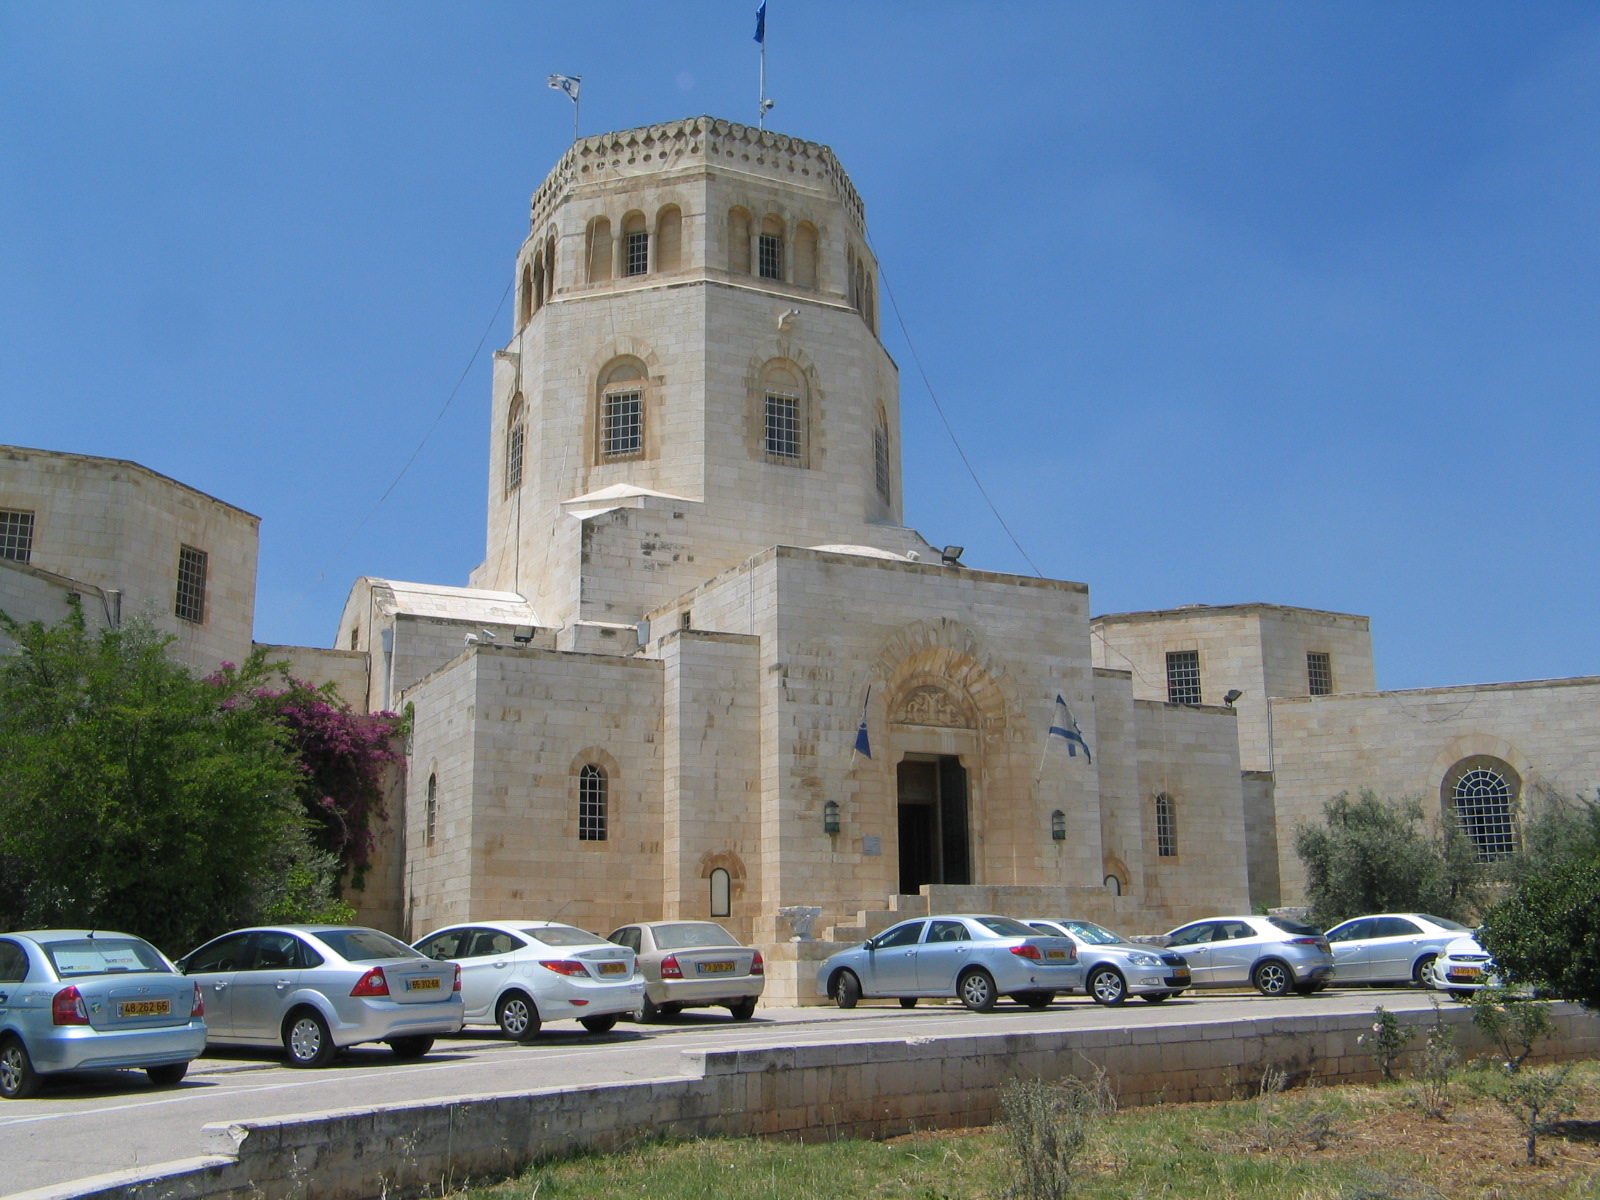 Israel's Tourist Attractions